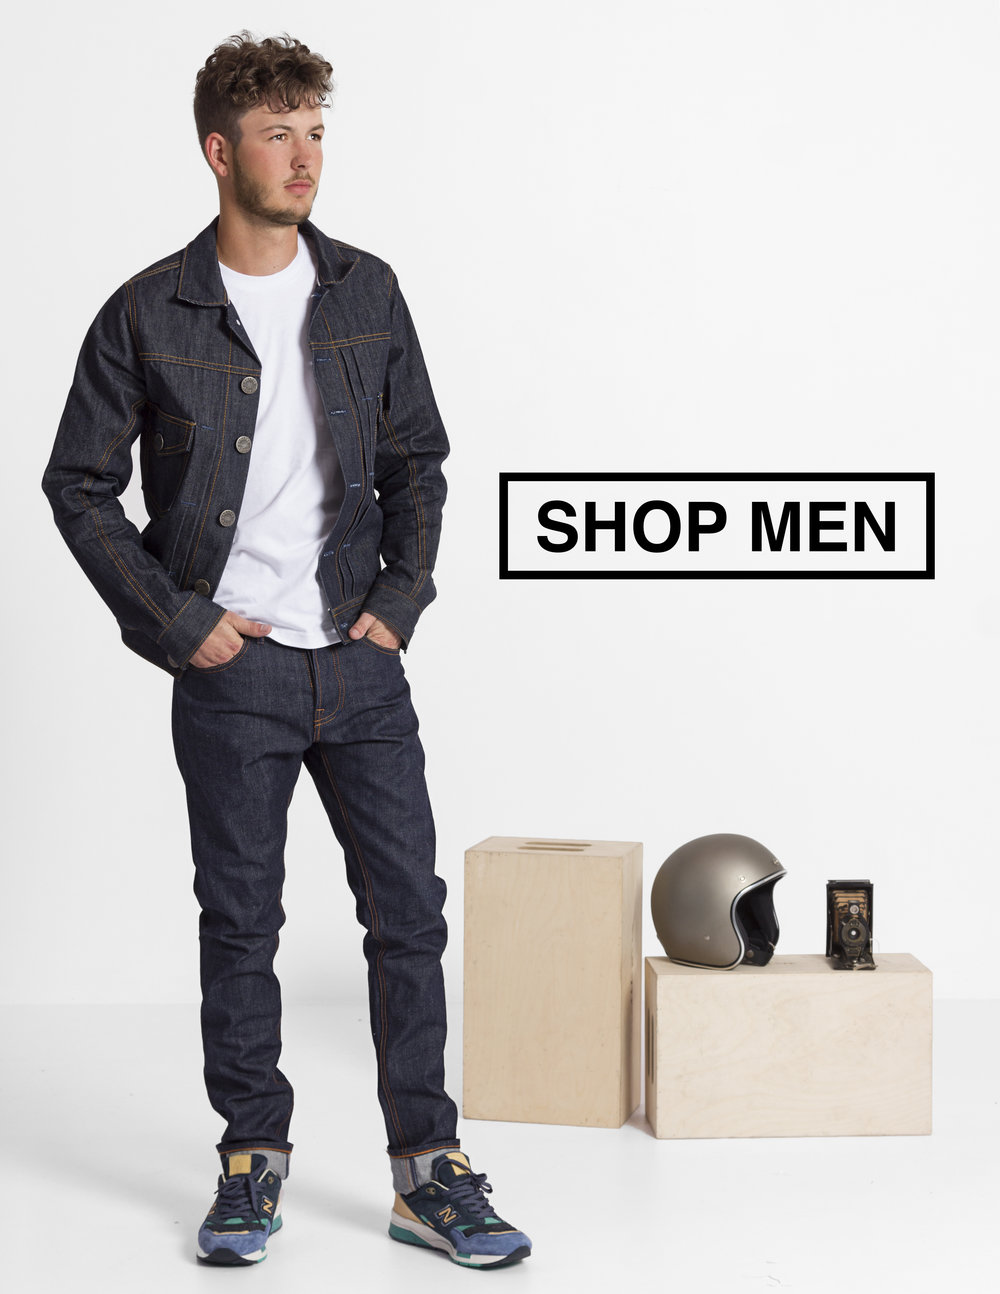 Shop all of our latest men's styles